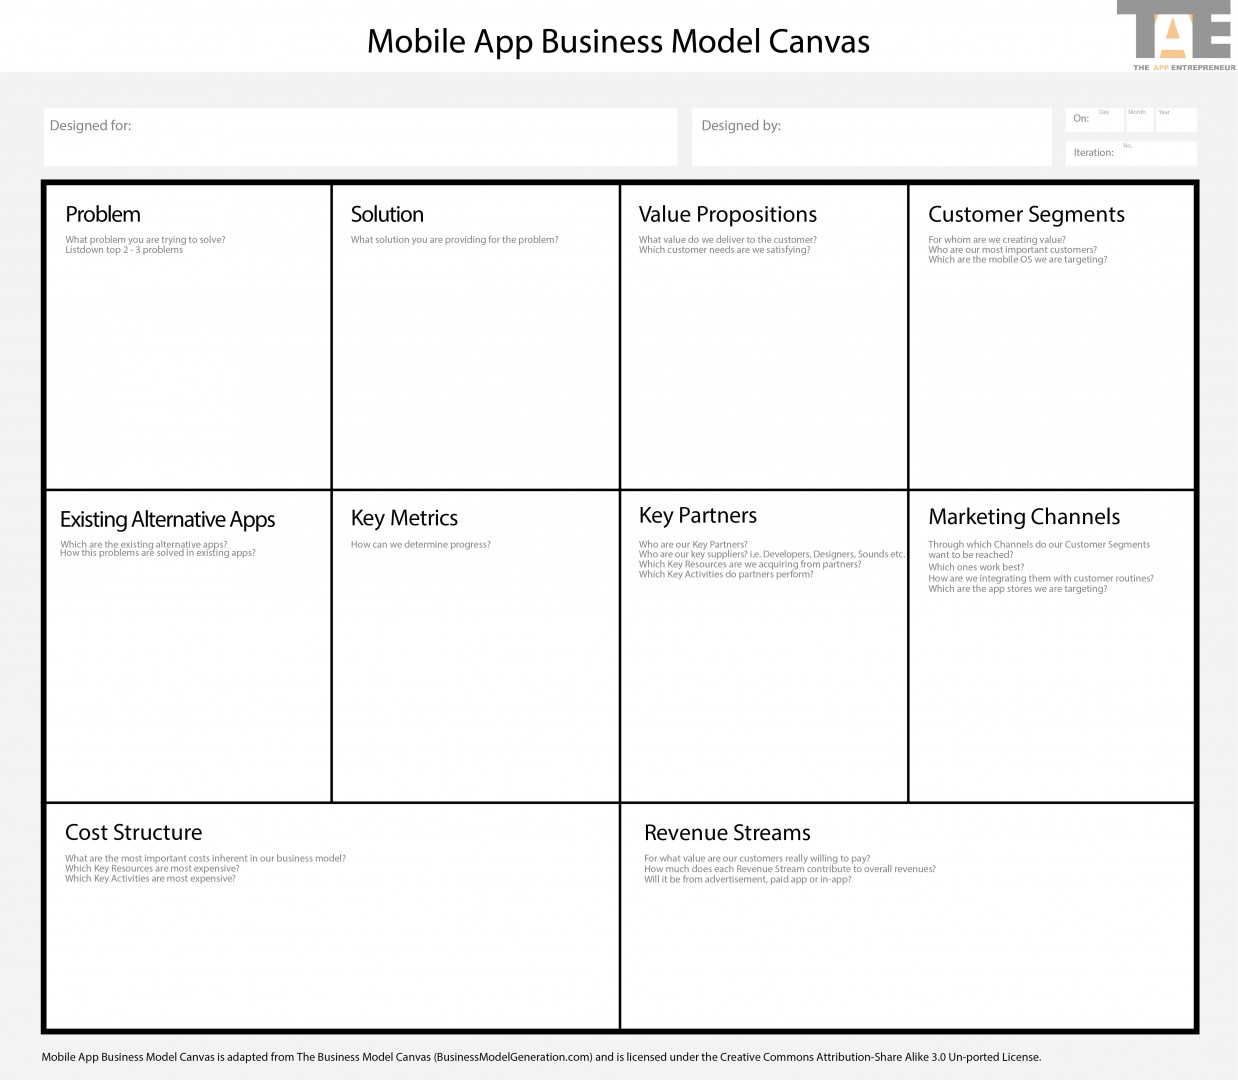 App Business Model Canvas | The App Entrepreneur